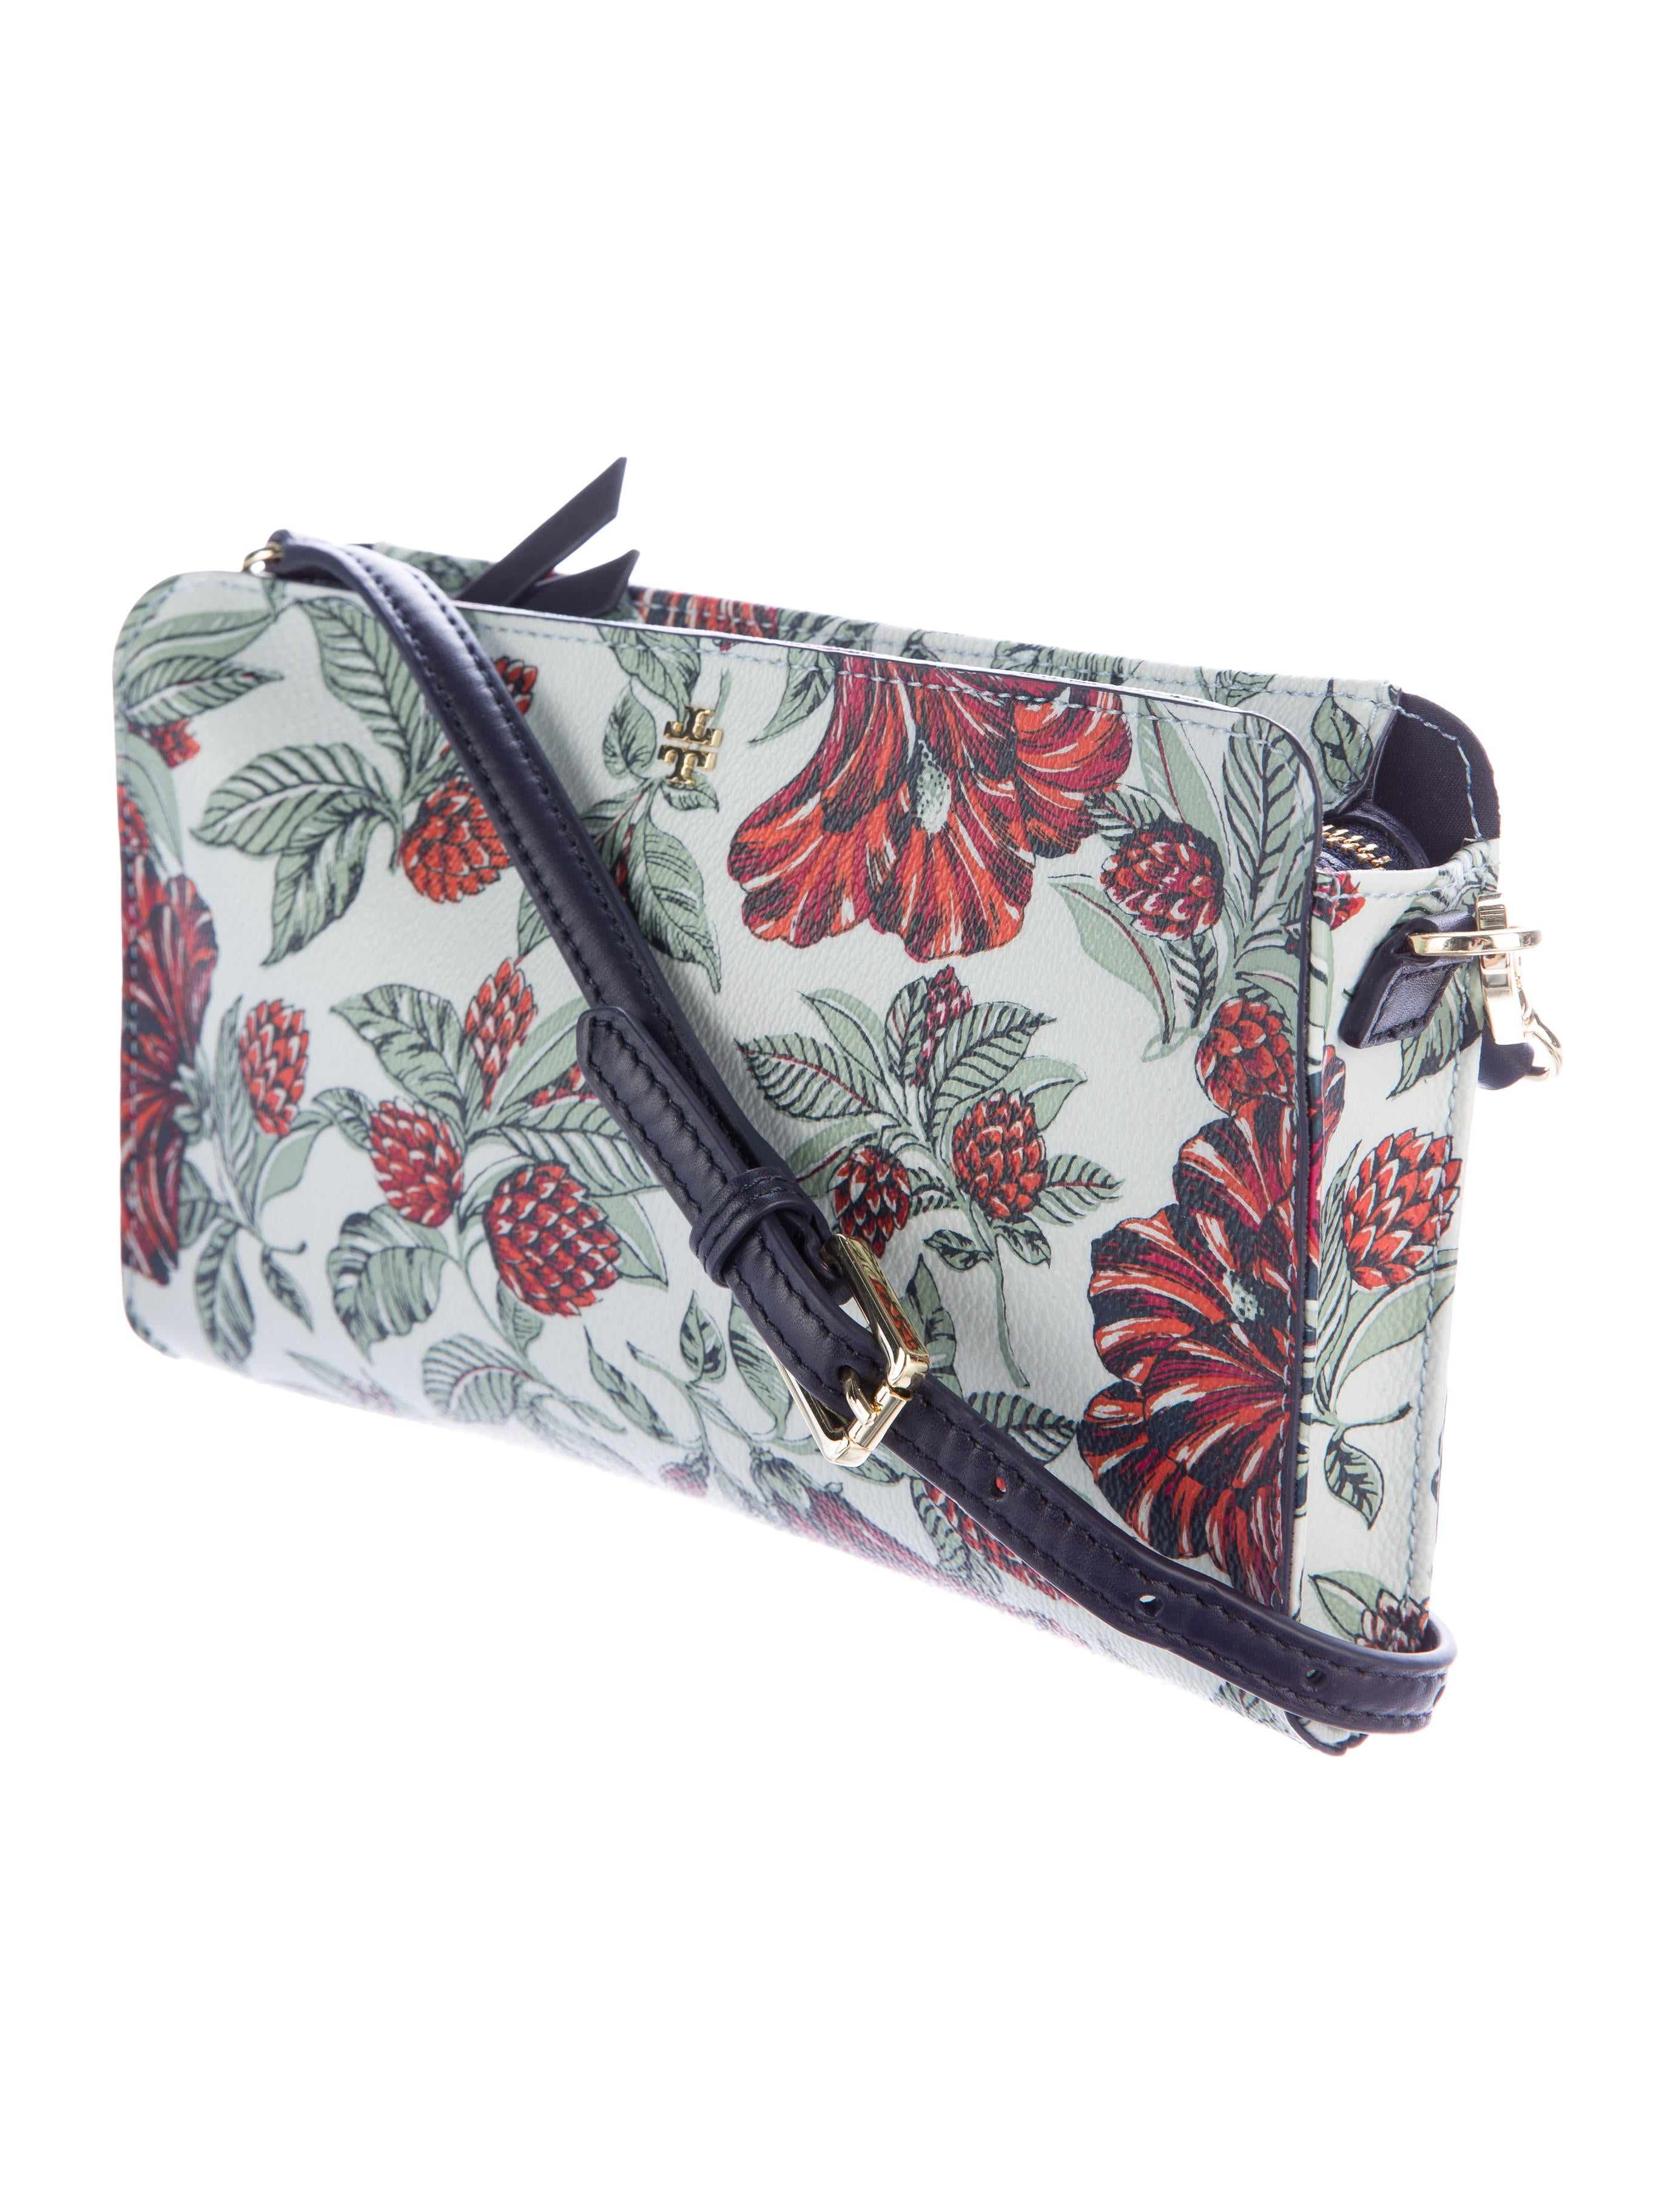 Tory Burch Floral Coated Canvas Crossbody Bag - Handbags - WTO102276 | The RealReal